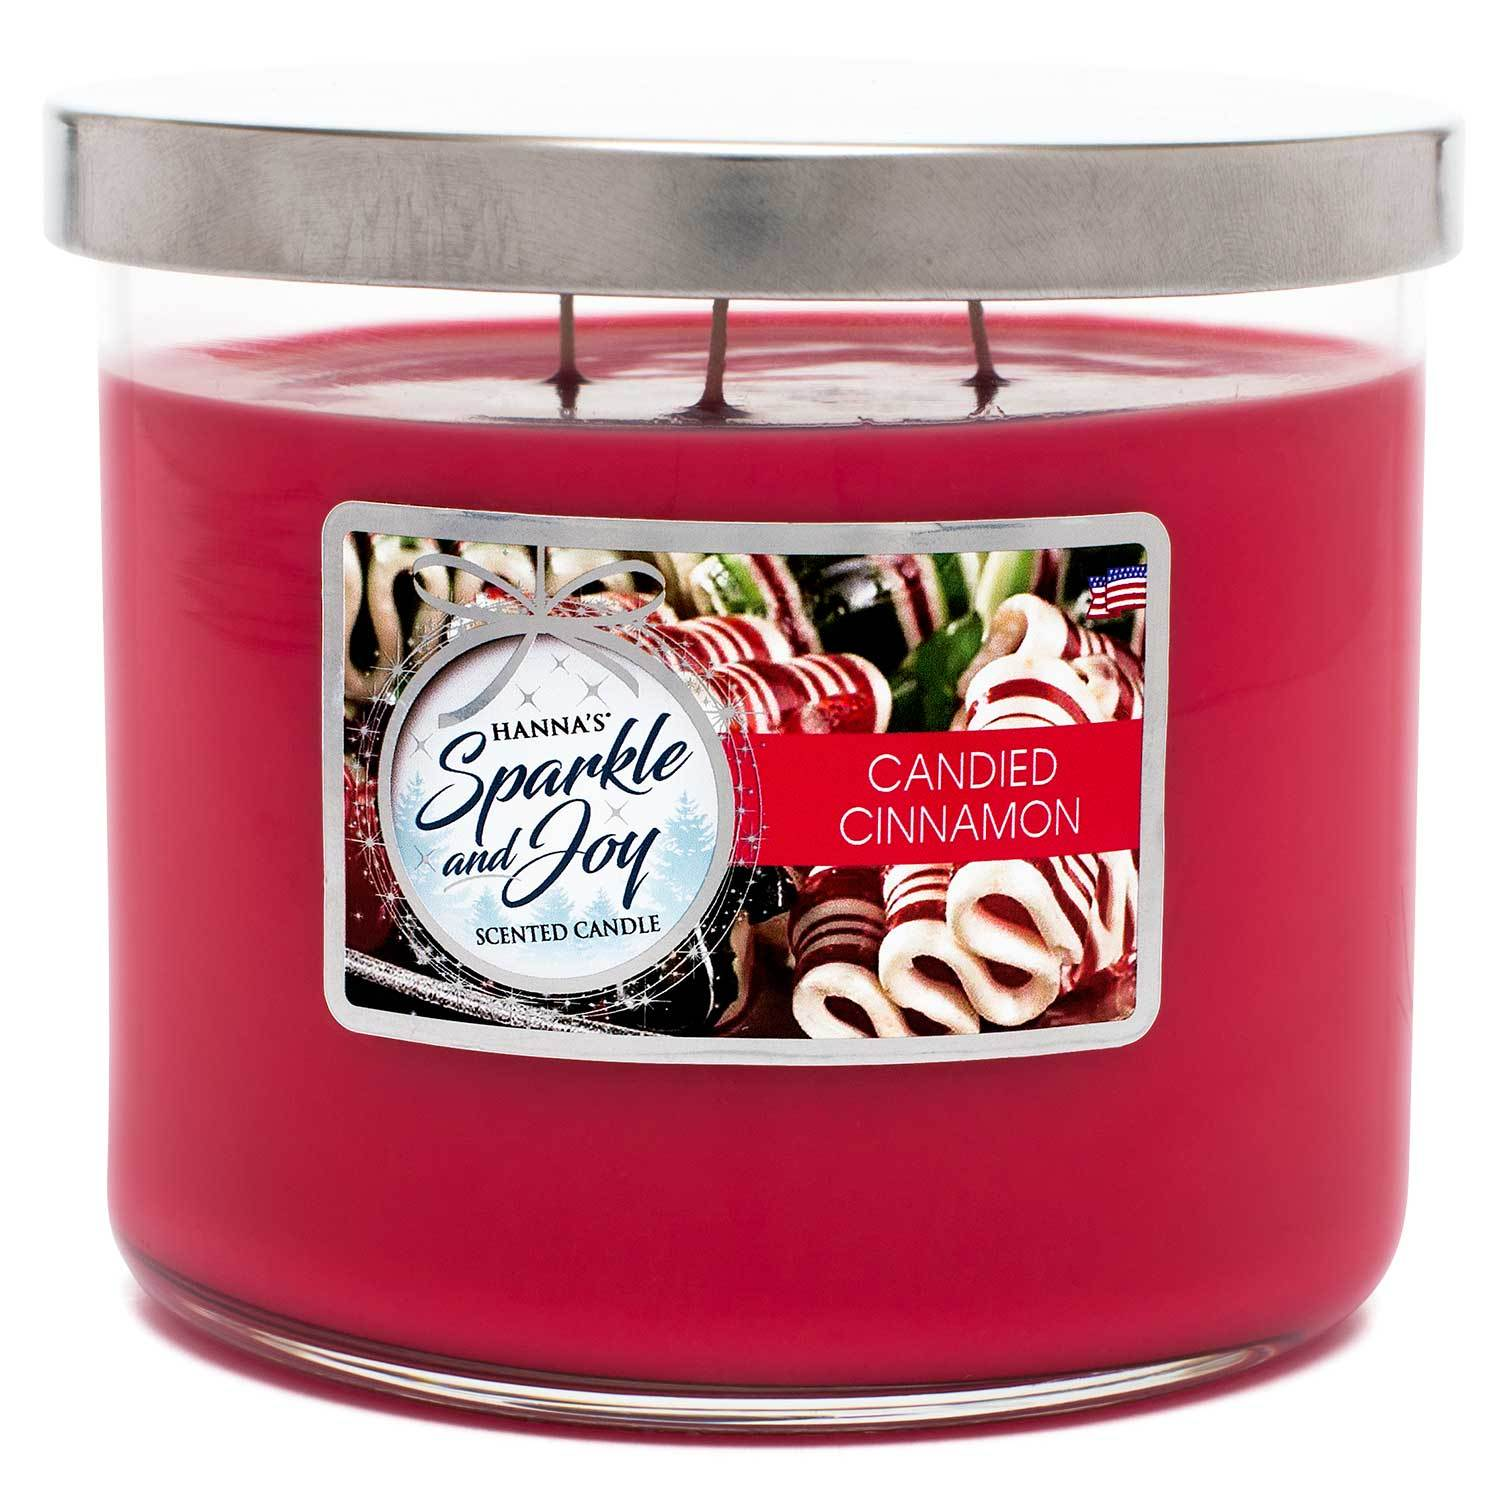 Candied Cinnamon Scented Large 3 wick Candle - Candlemart.com